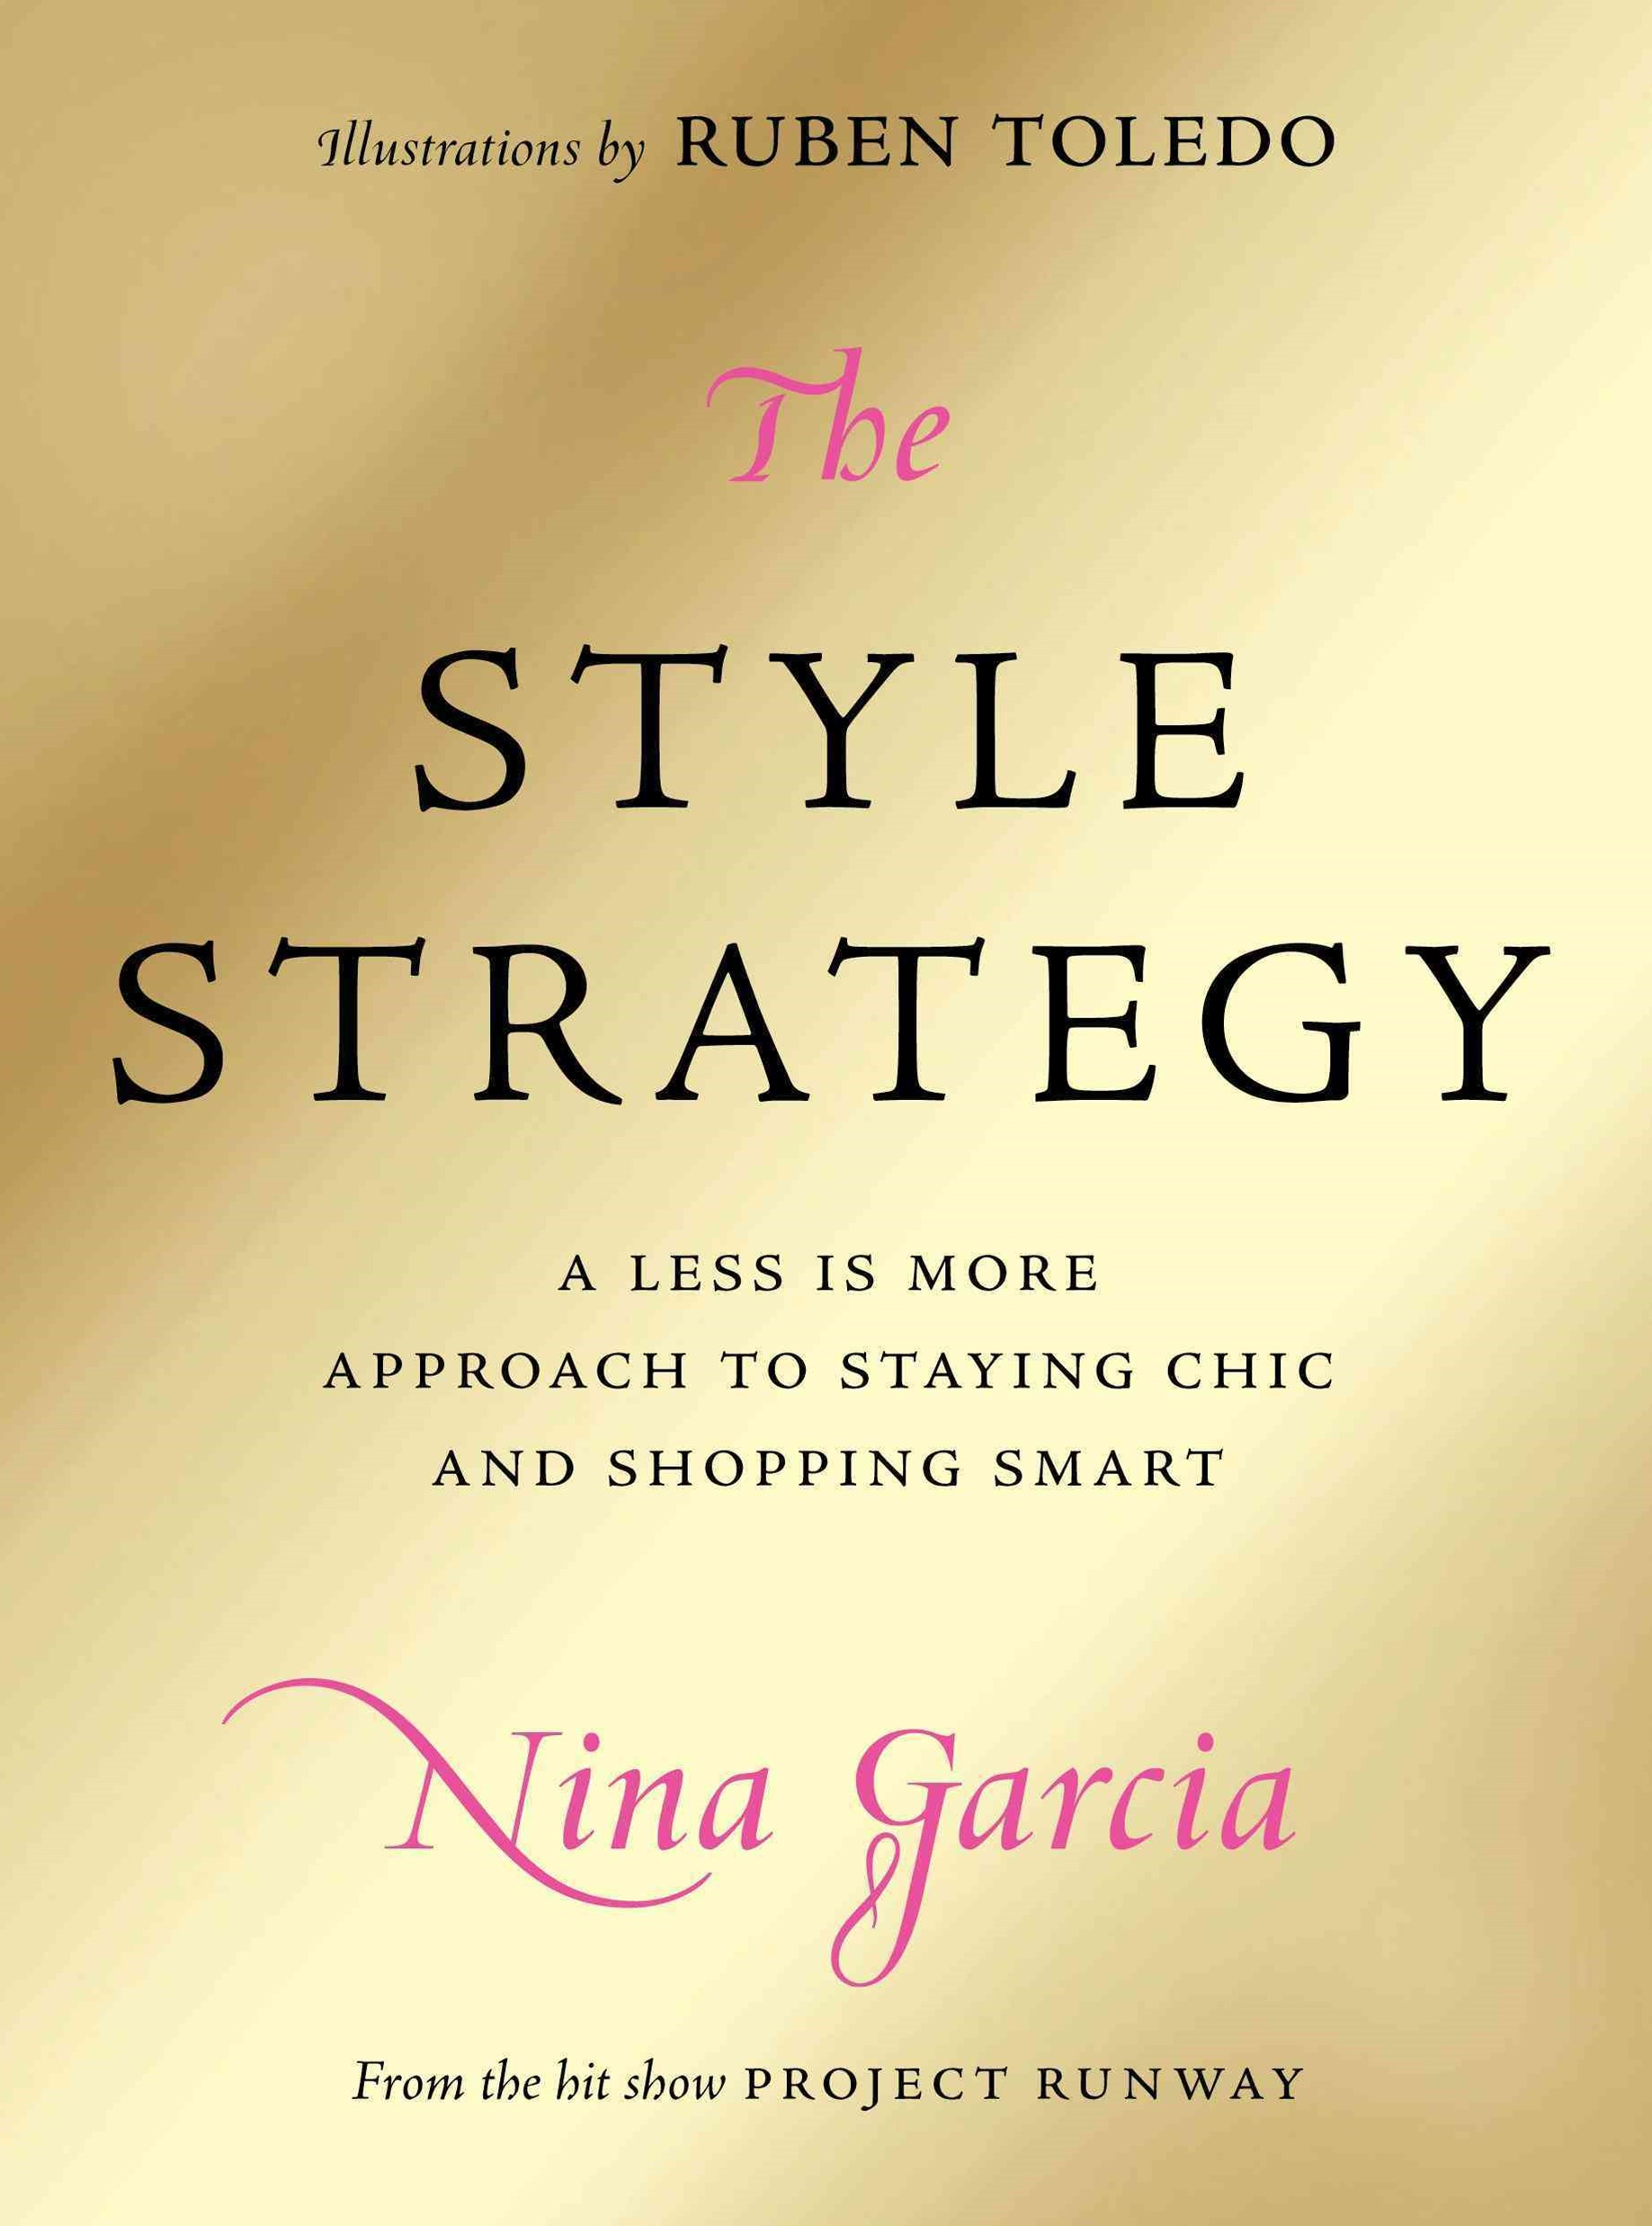 The Style Strategy: A Less Is More Approach to Staying Chic and ShoppingSmart